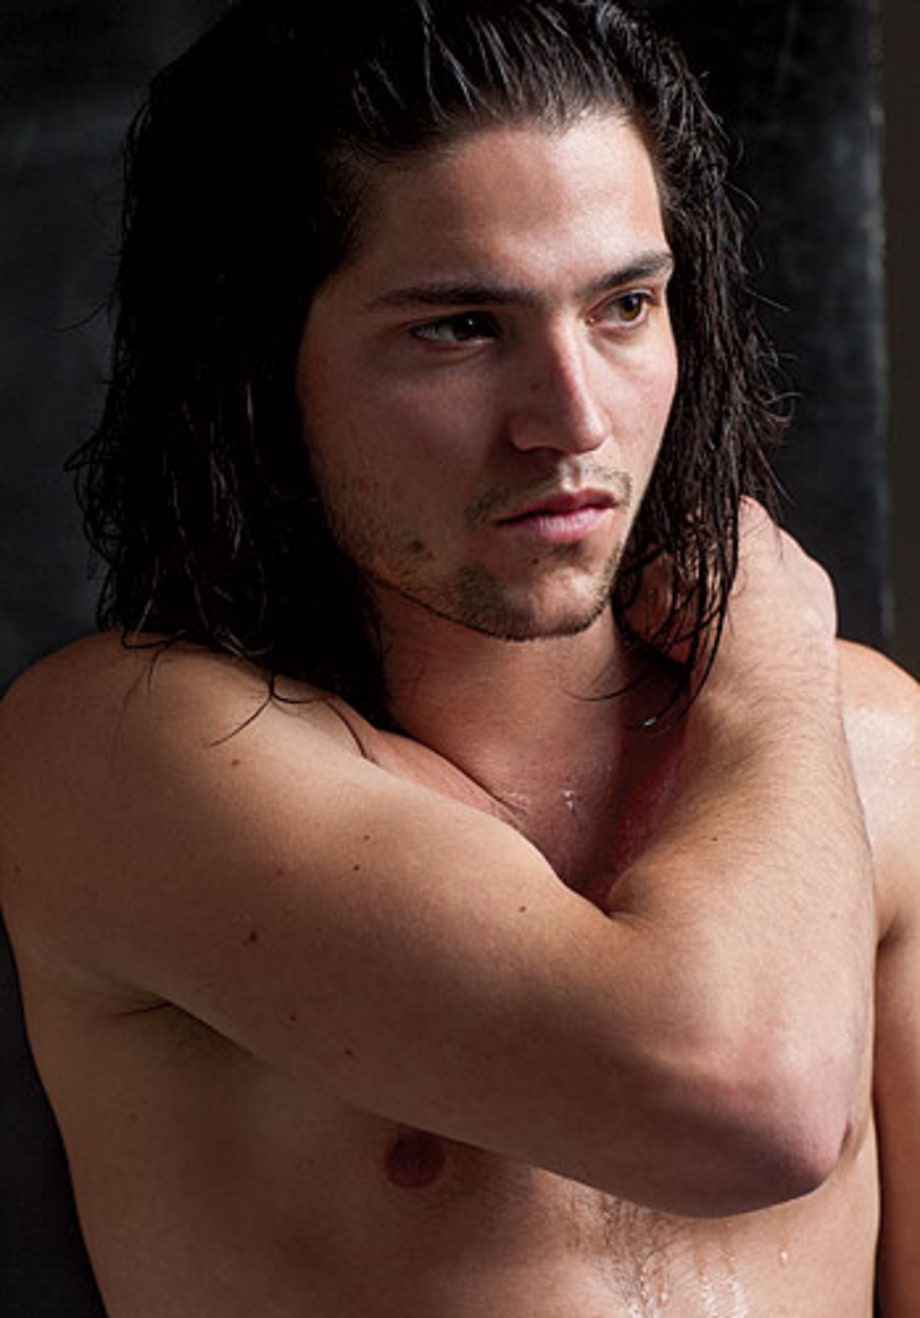 Hot Heartthrob: Thomas McDonell